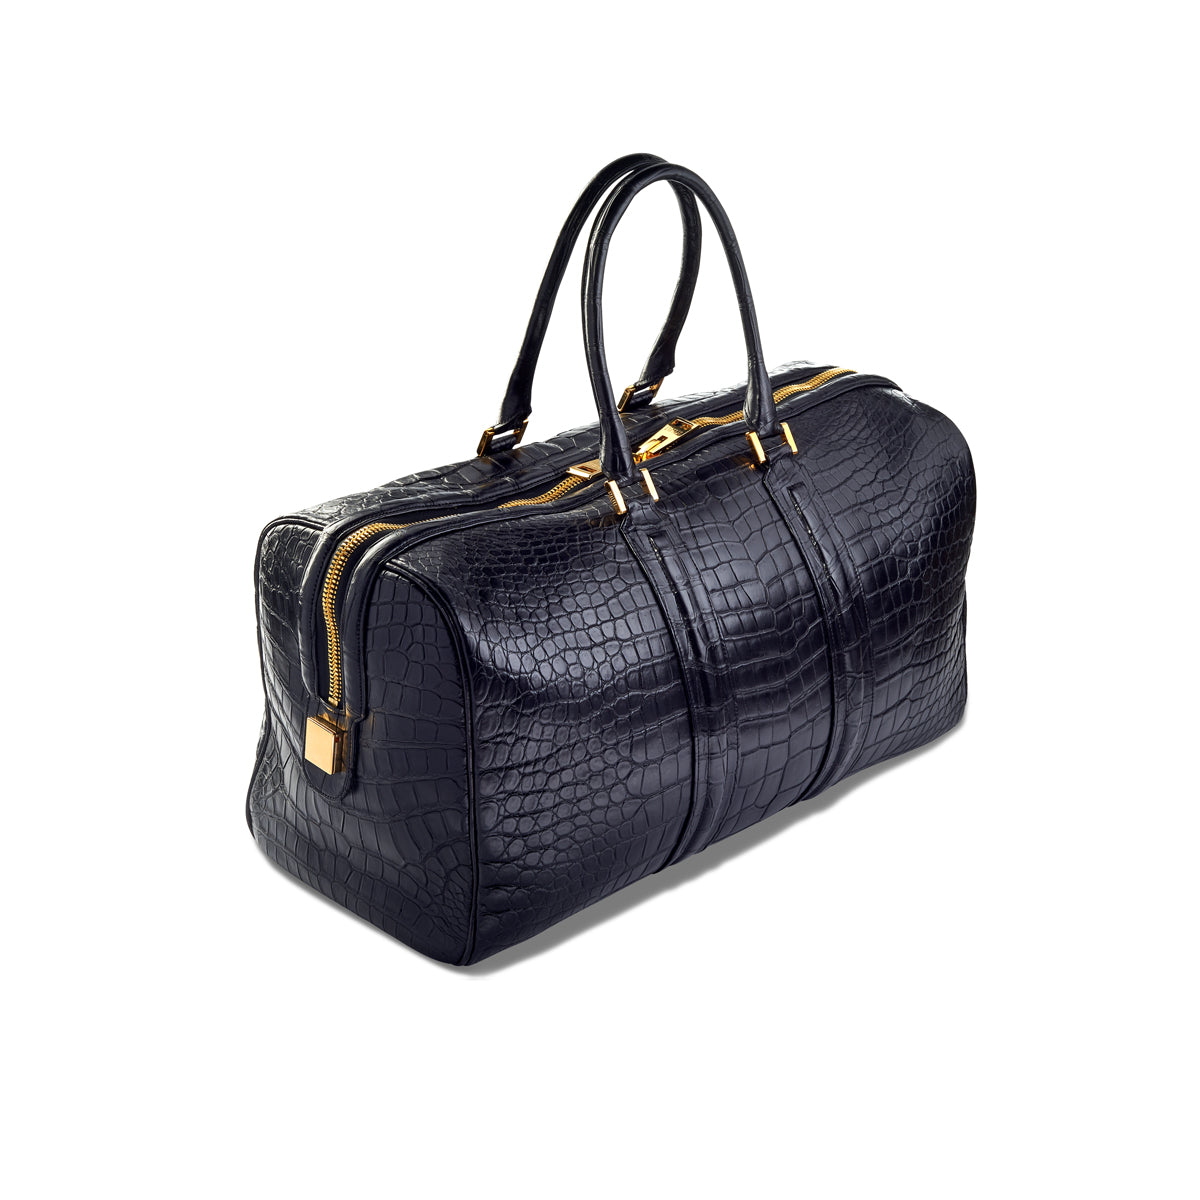 Wong Duffel - Black Alligator